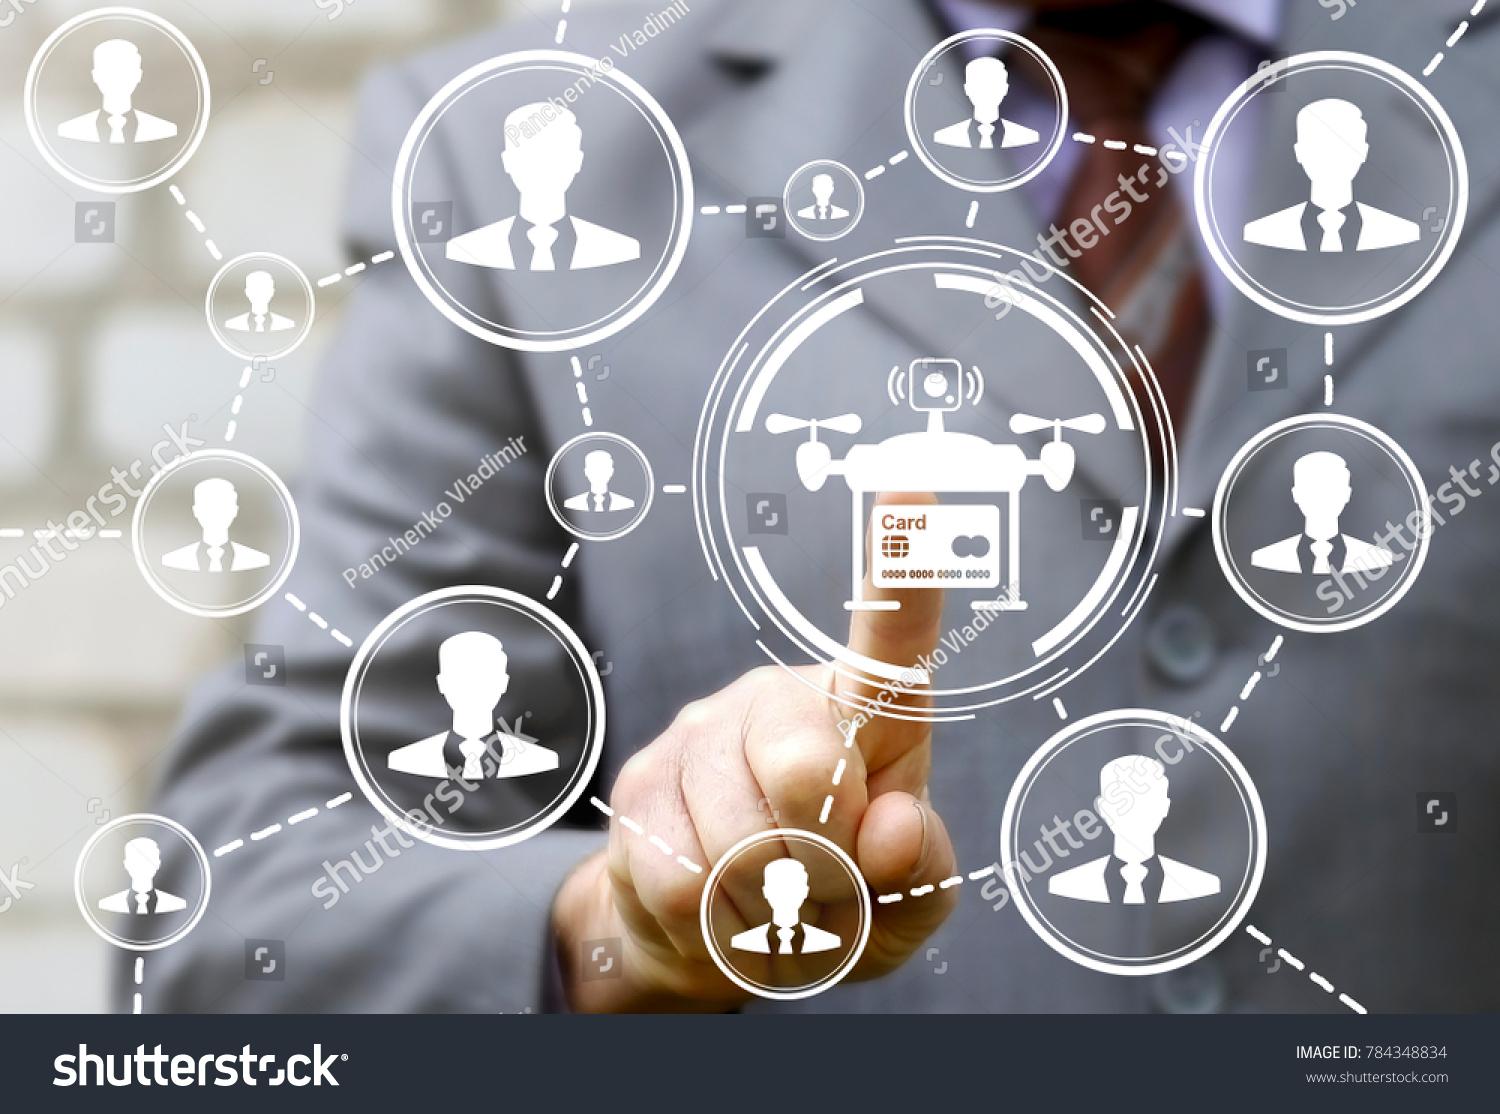 Drone Shop Business Credit Card Web Stock Photo 784348834 ...